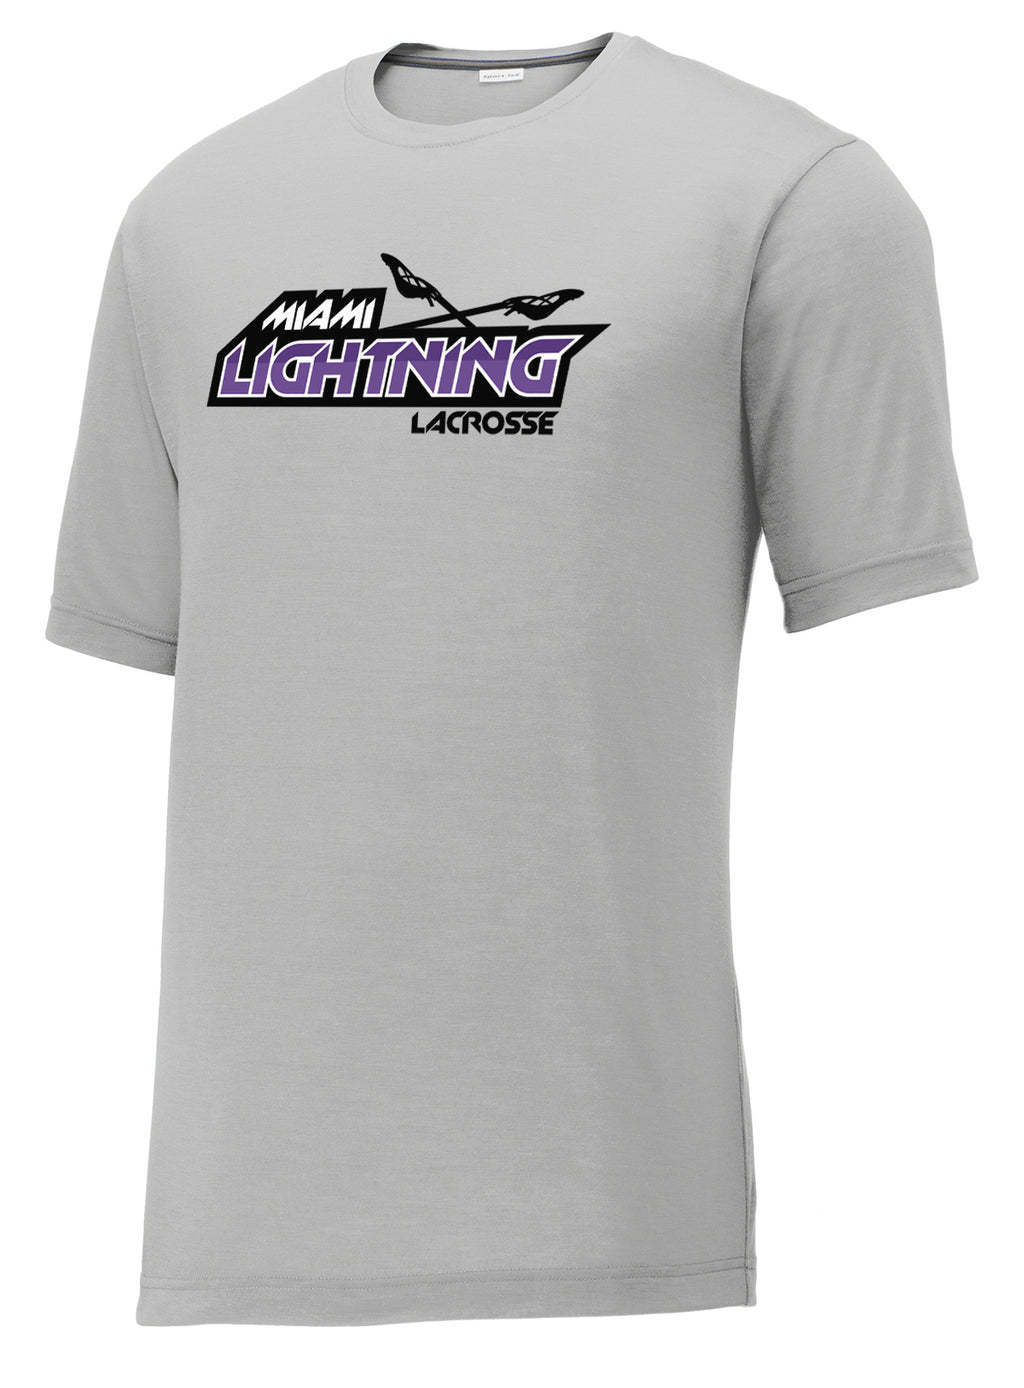 Miami Lightning Silver CottonTouch Performance T-Shirt